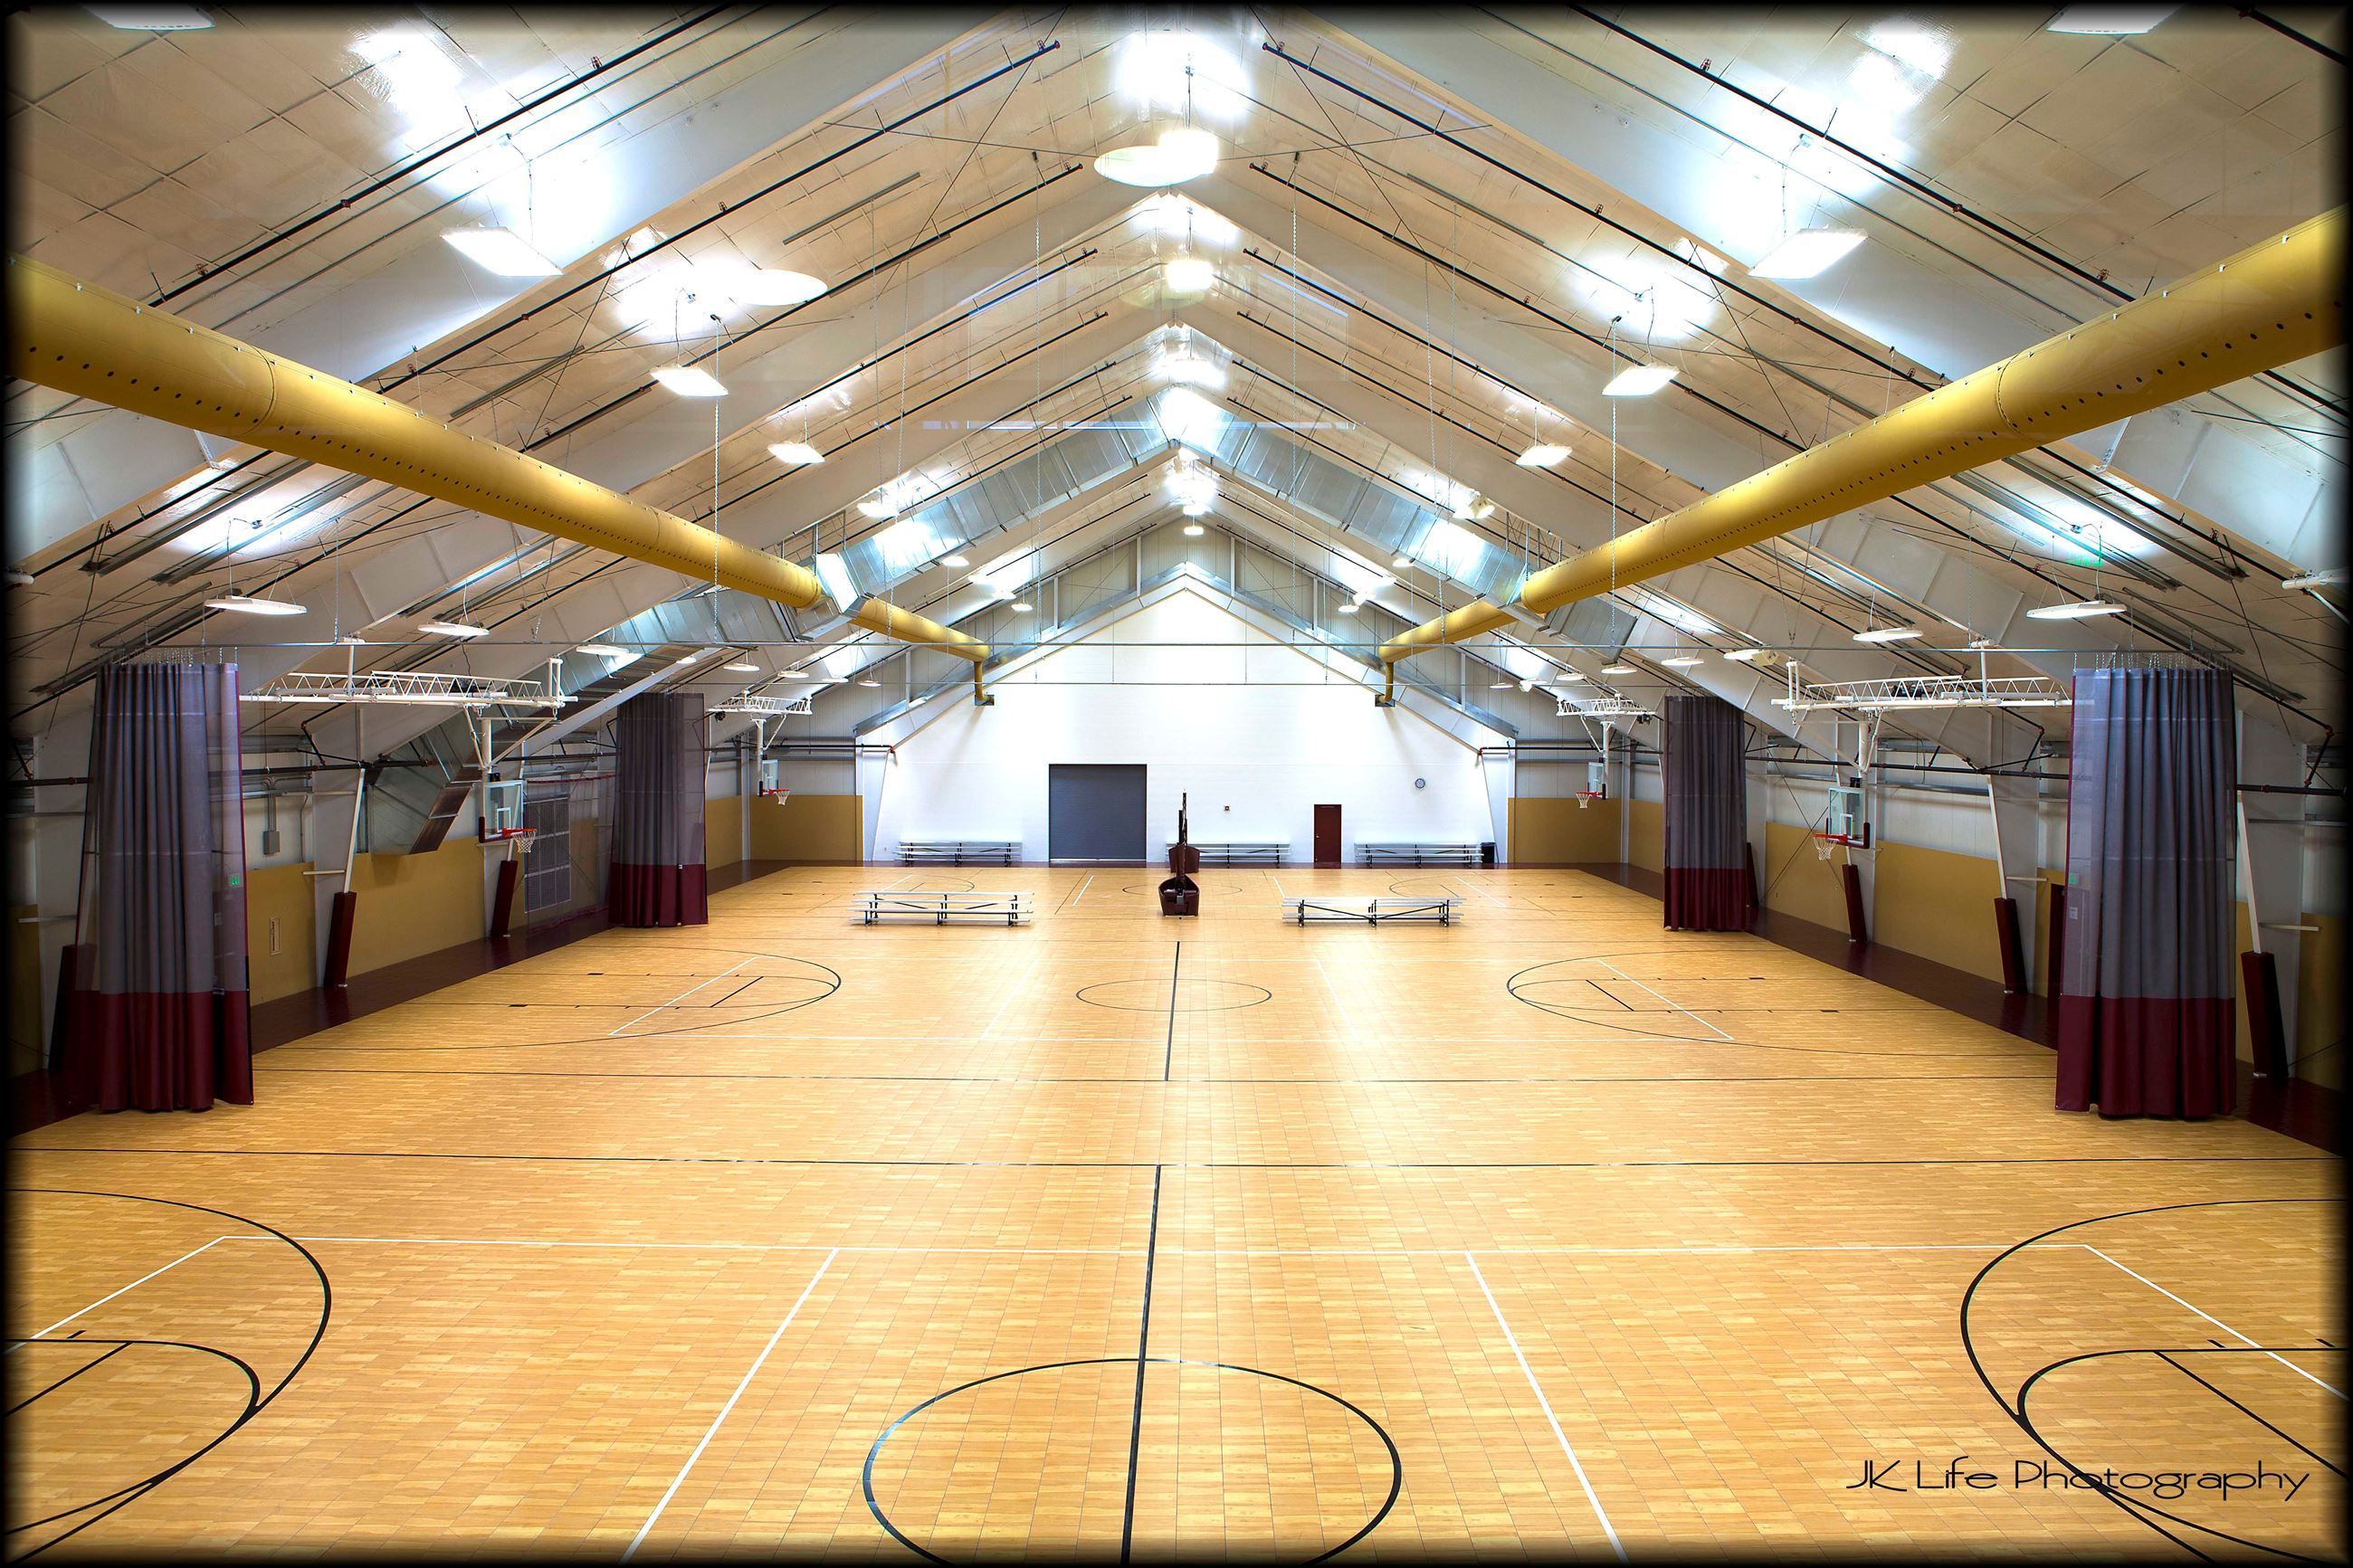 Need a place to host your next event? The Southridge